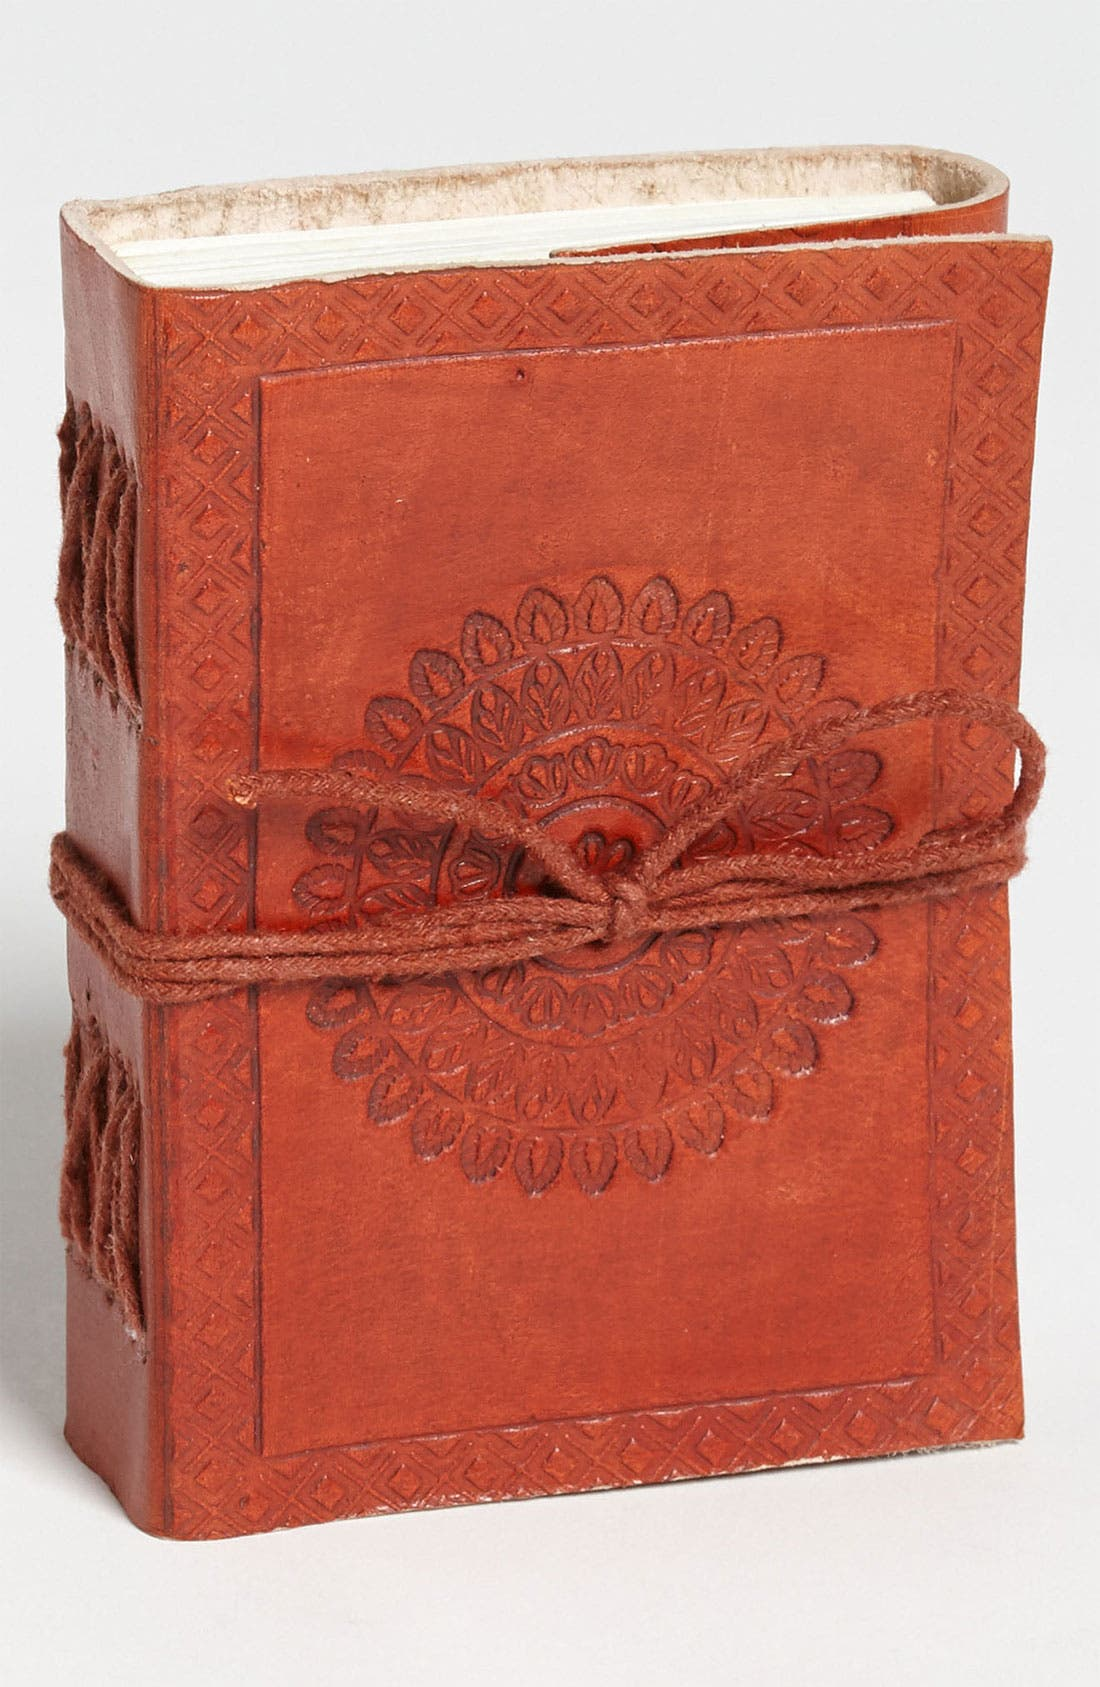 Main Image - Leather-Bound Traveler's Notebook, Small